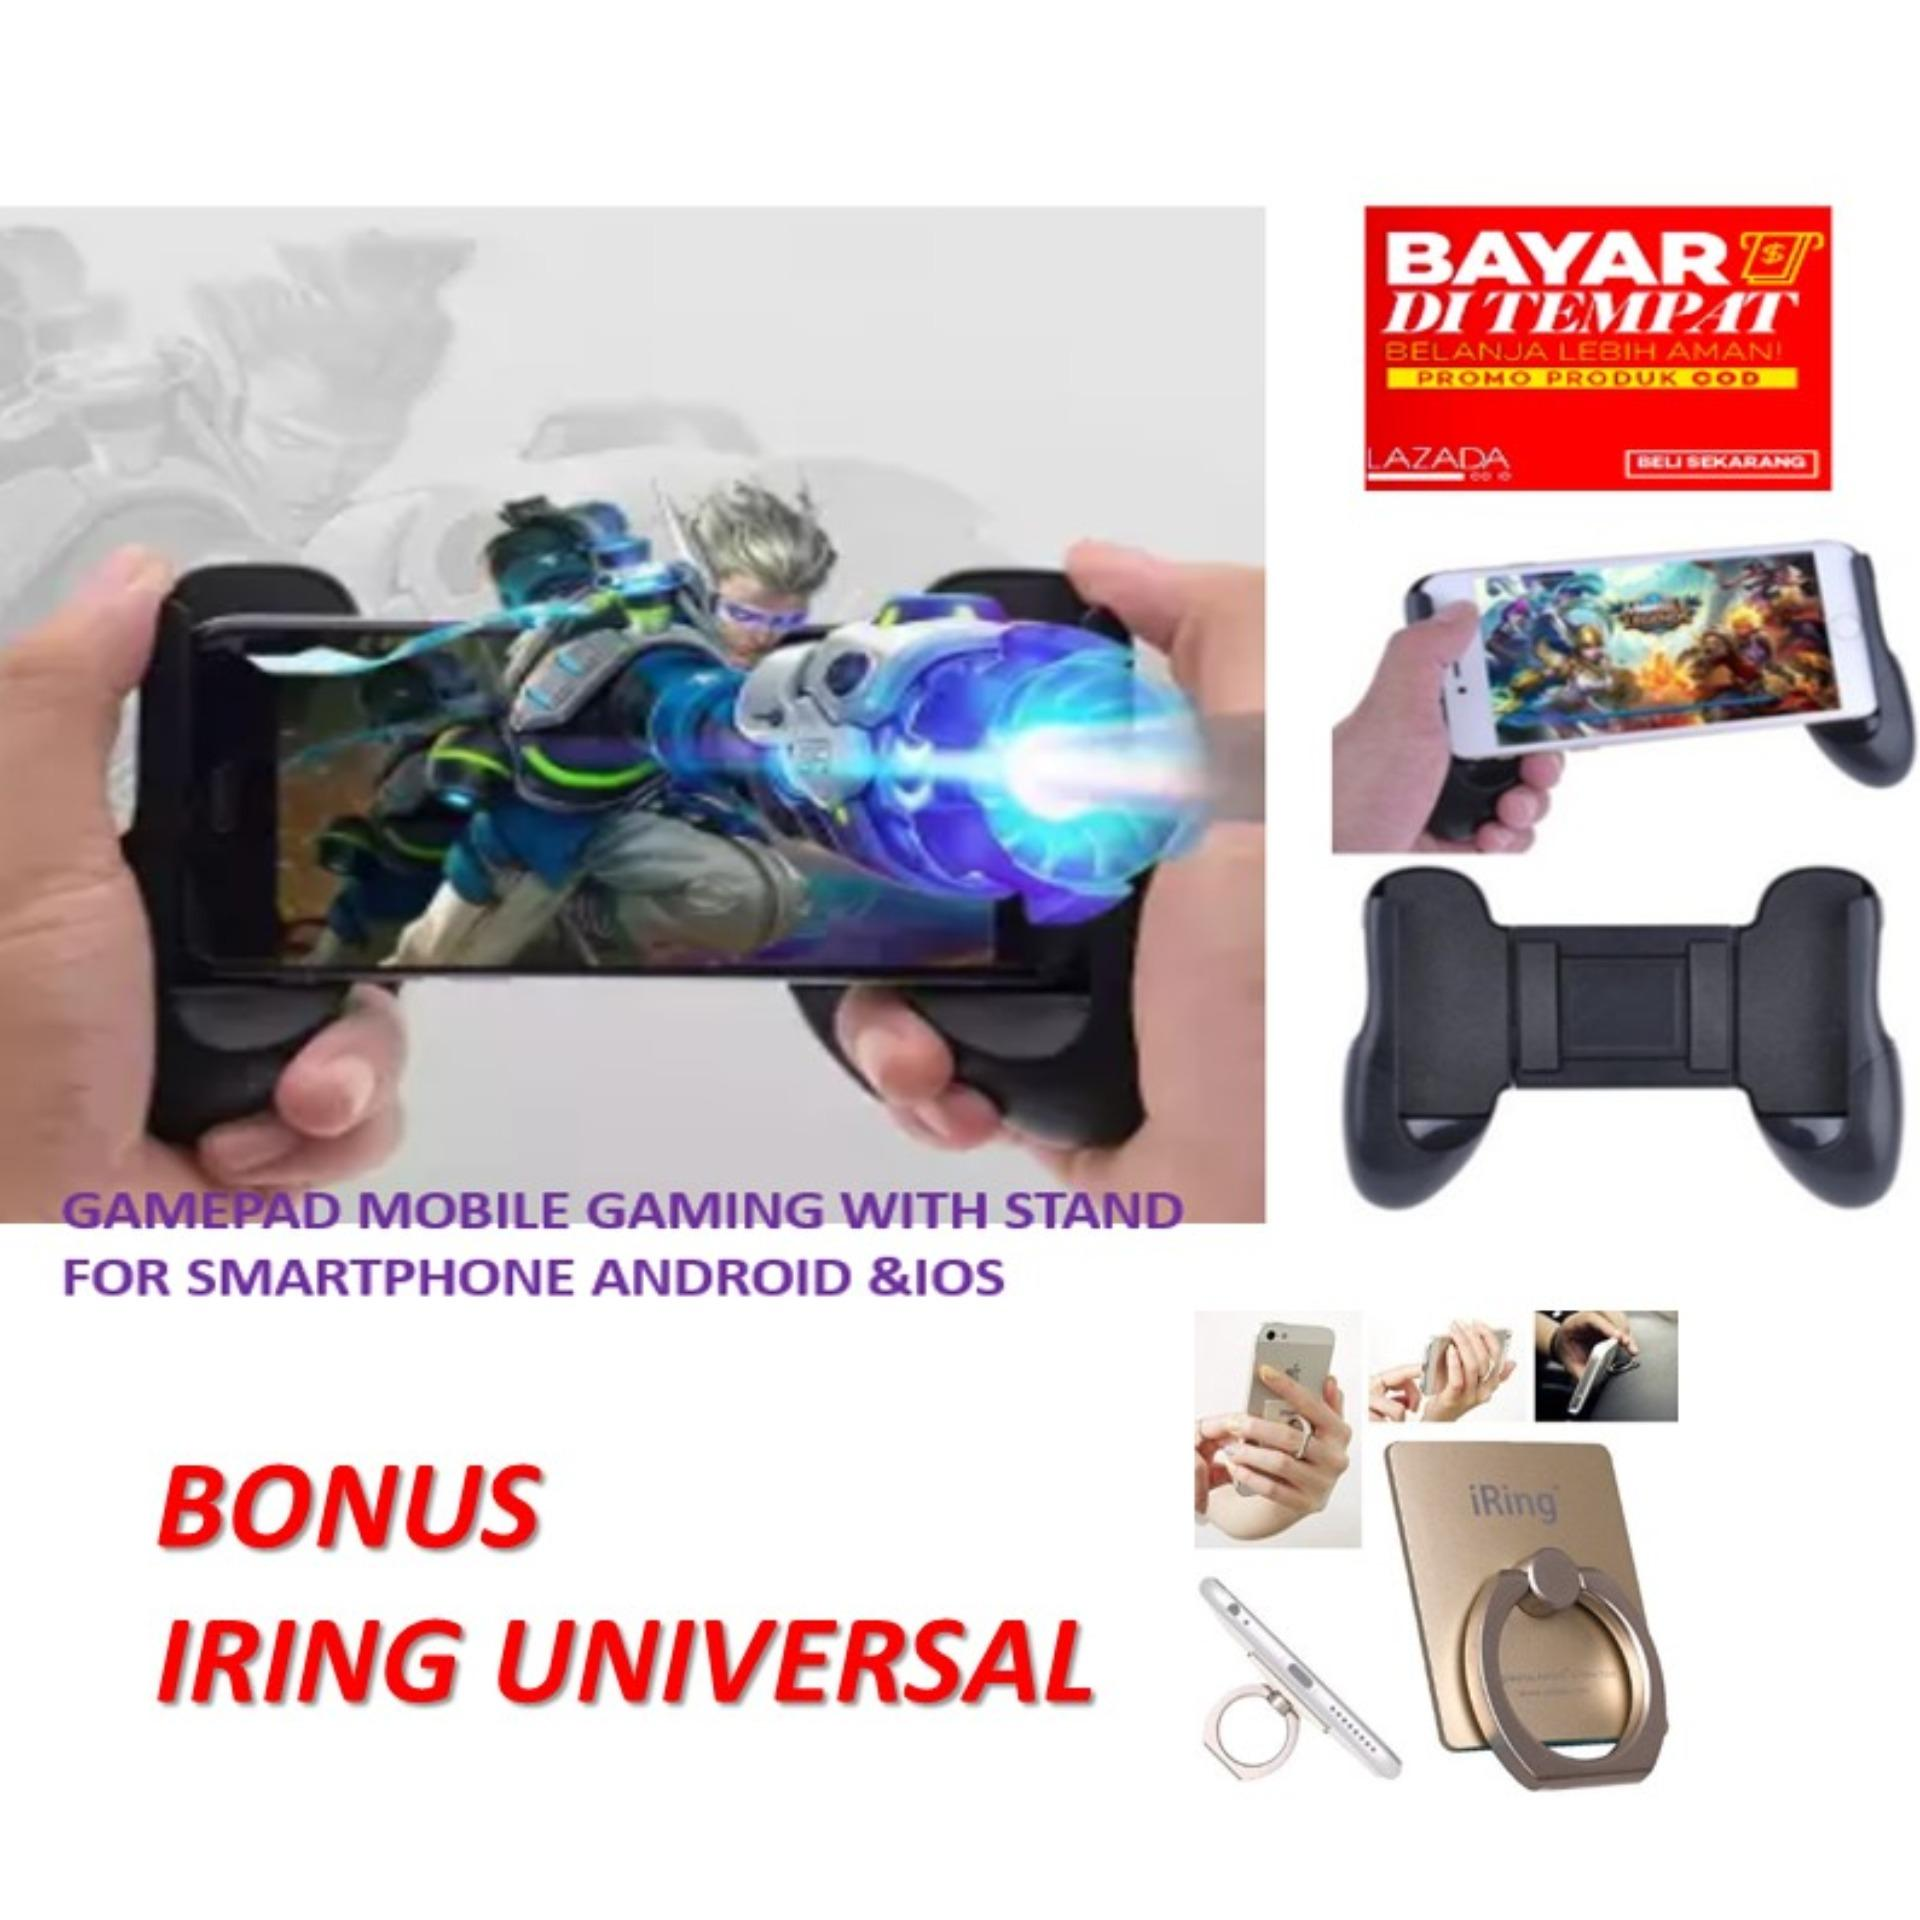 gamepad – mobile holder bisa standing untuk gaming – bisa semua jenis hp android & ios universal for mobile legend/ aov / pubg/ ros/ gamepad mobile / gamepad untuk pegangan mobile game universal bonus iring hp